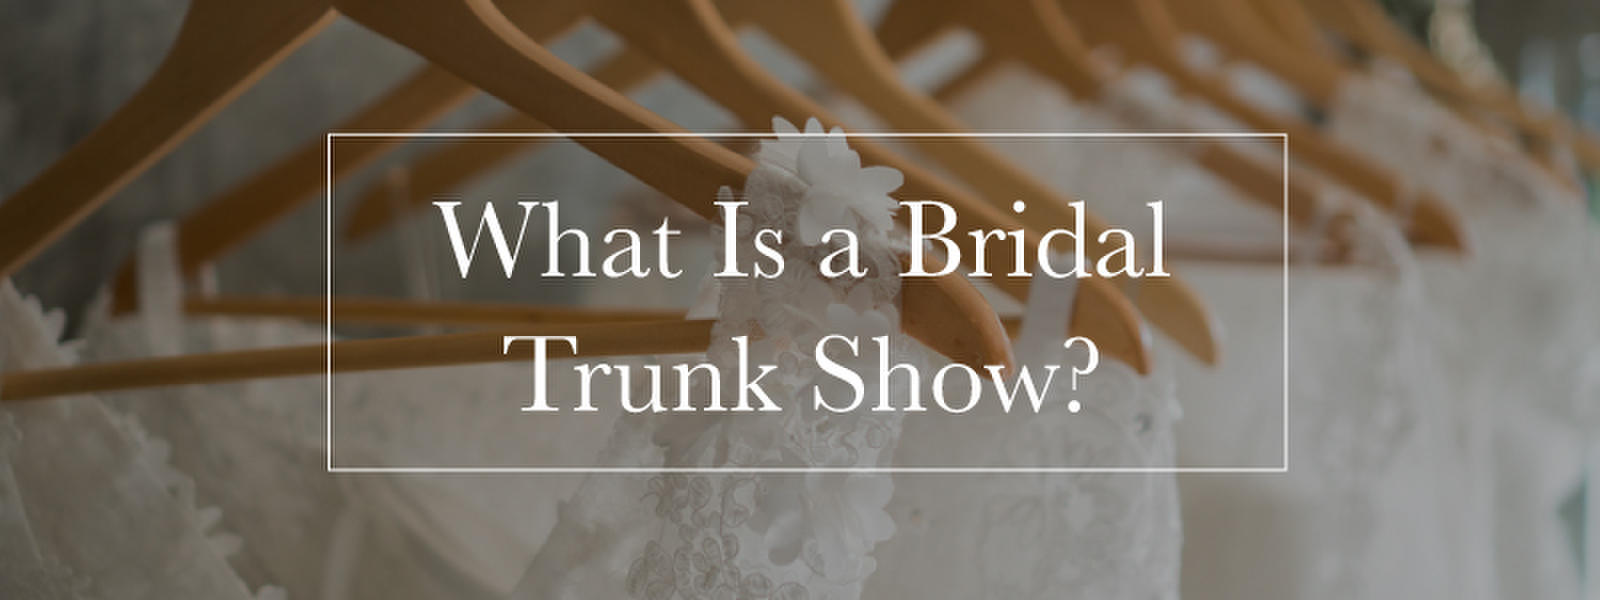 what is a bridal trunk show